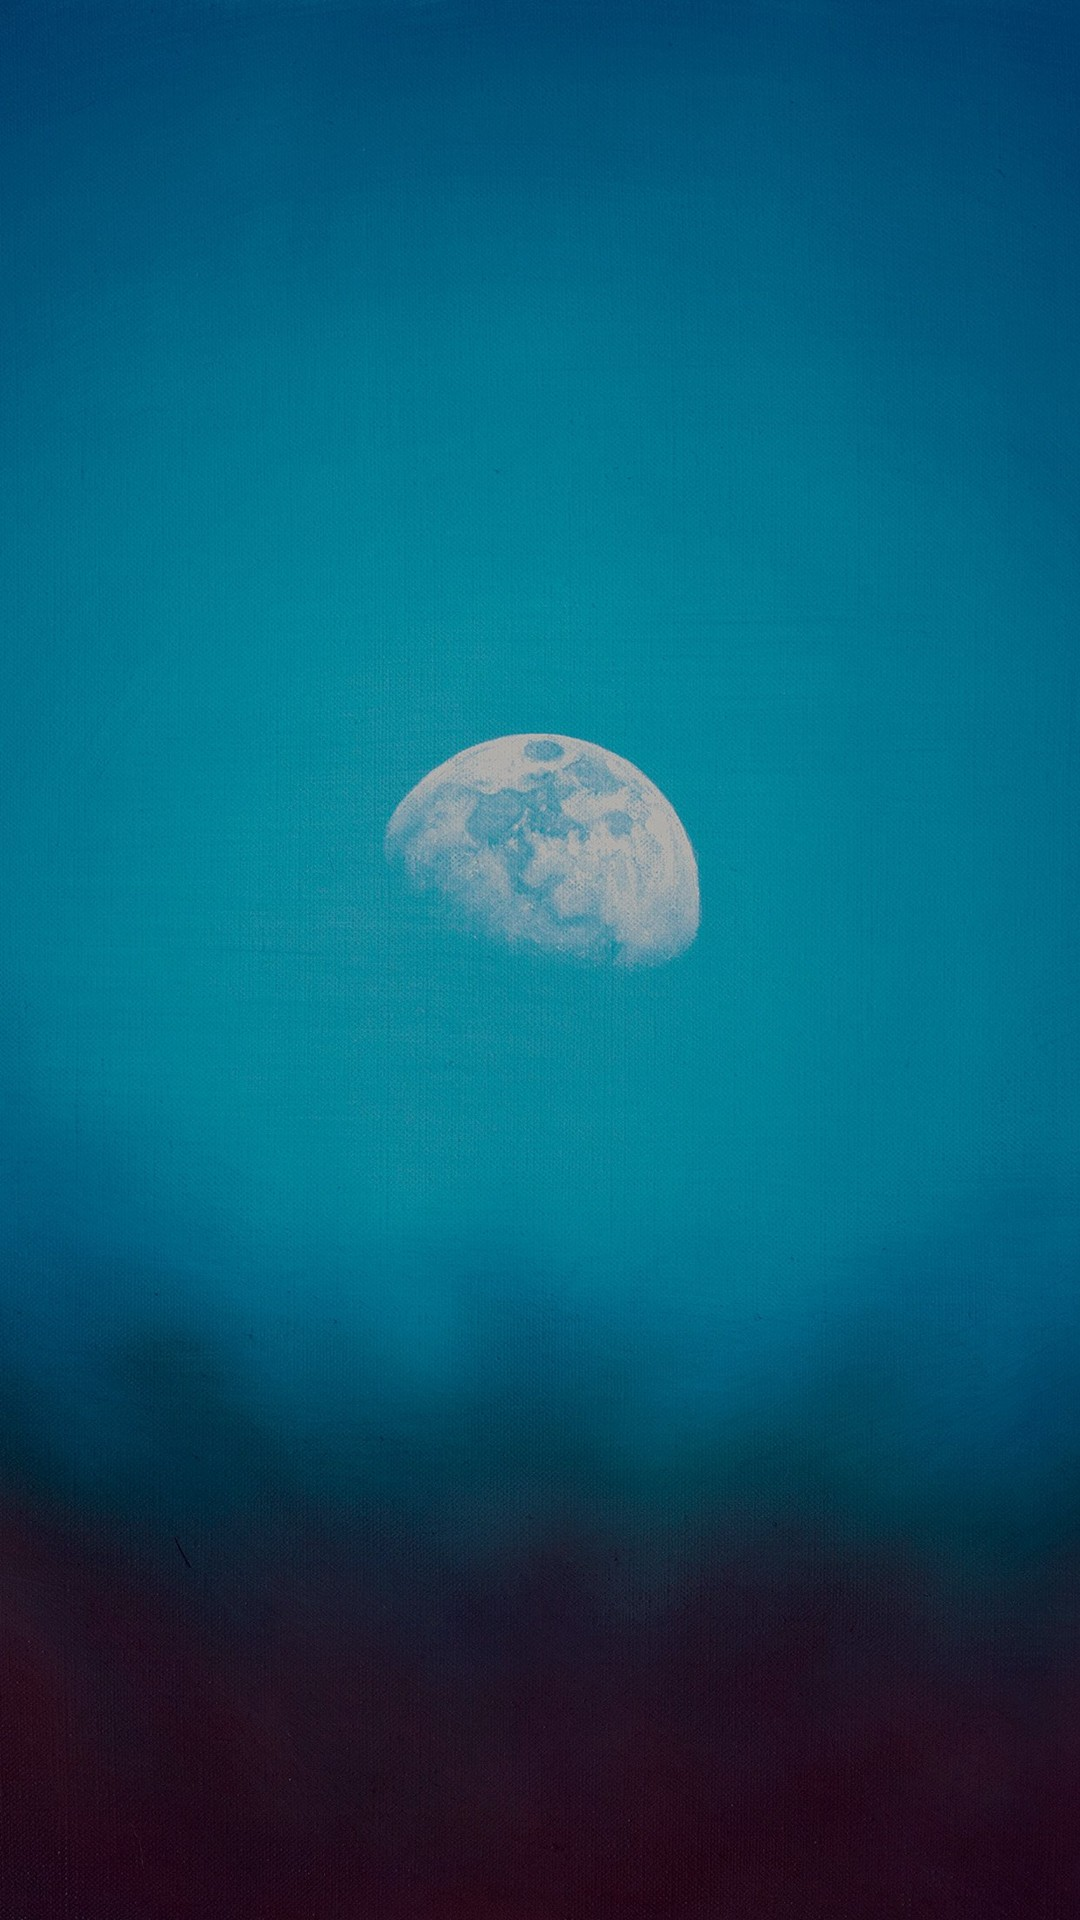 1080x1920 Moon Rise Day Nature Blue Dark Night Green iPhone 6 wallpaper